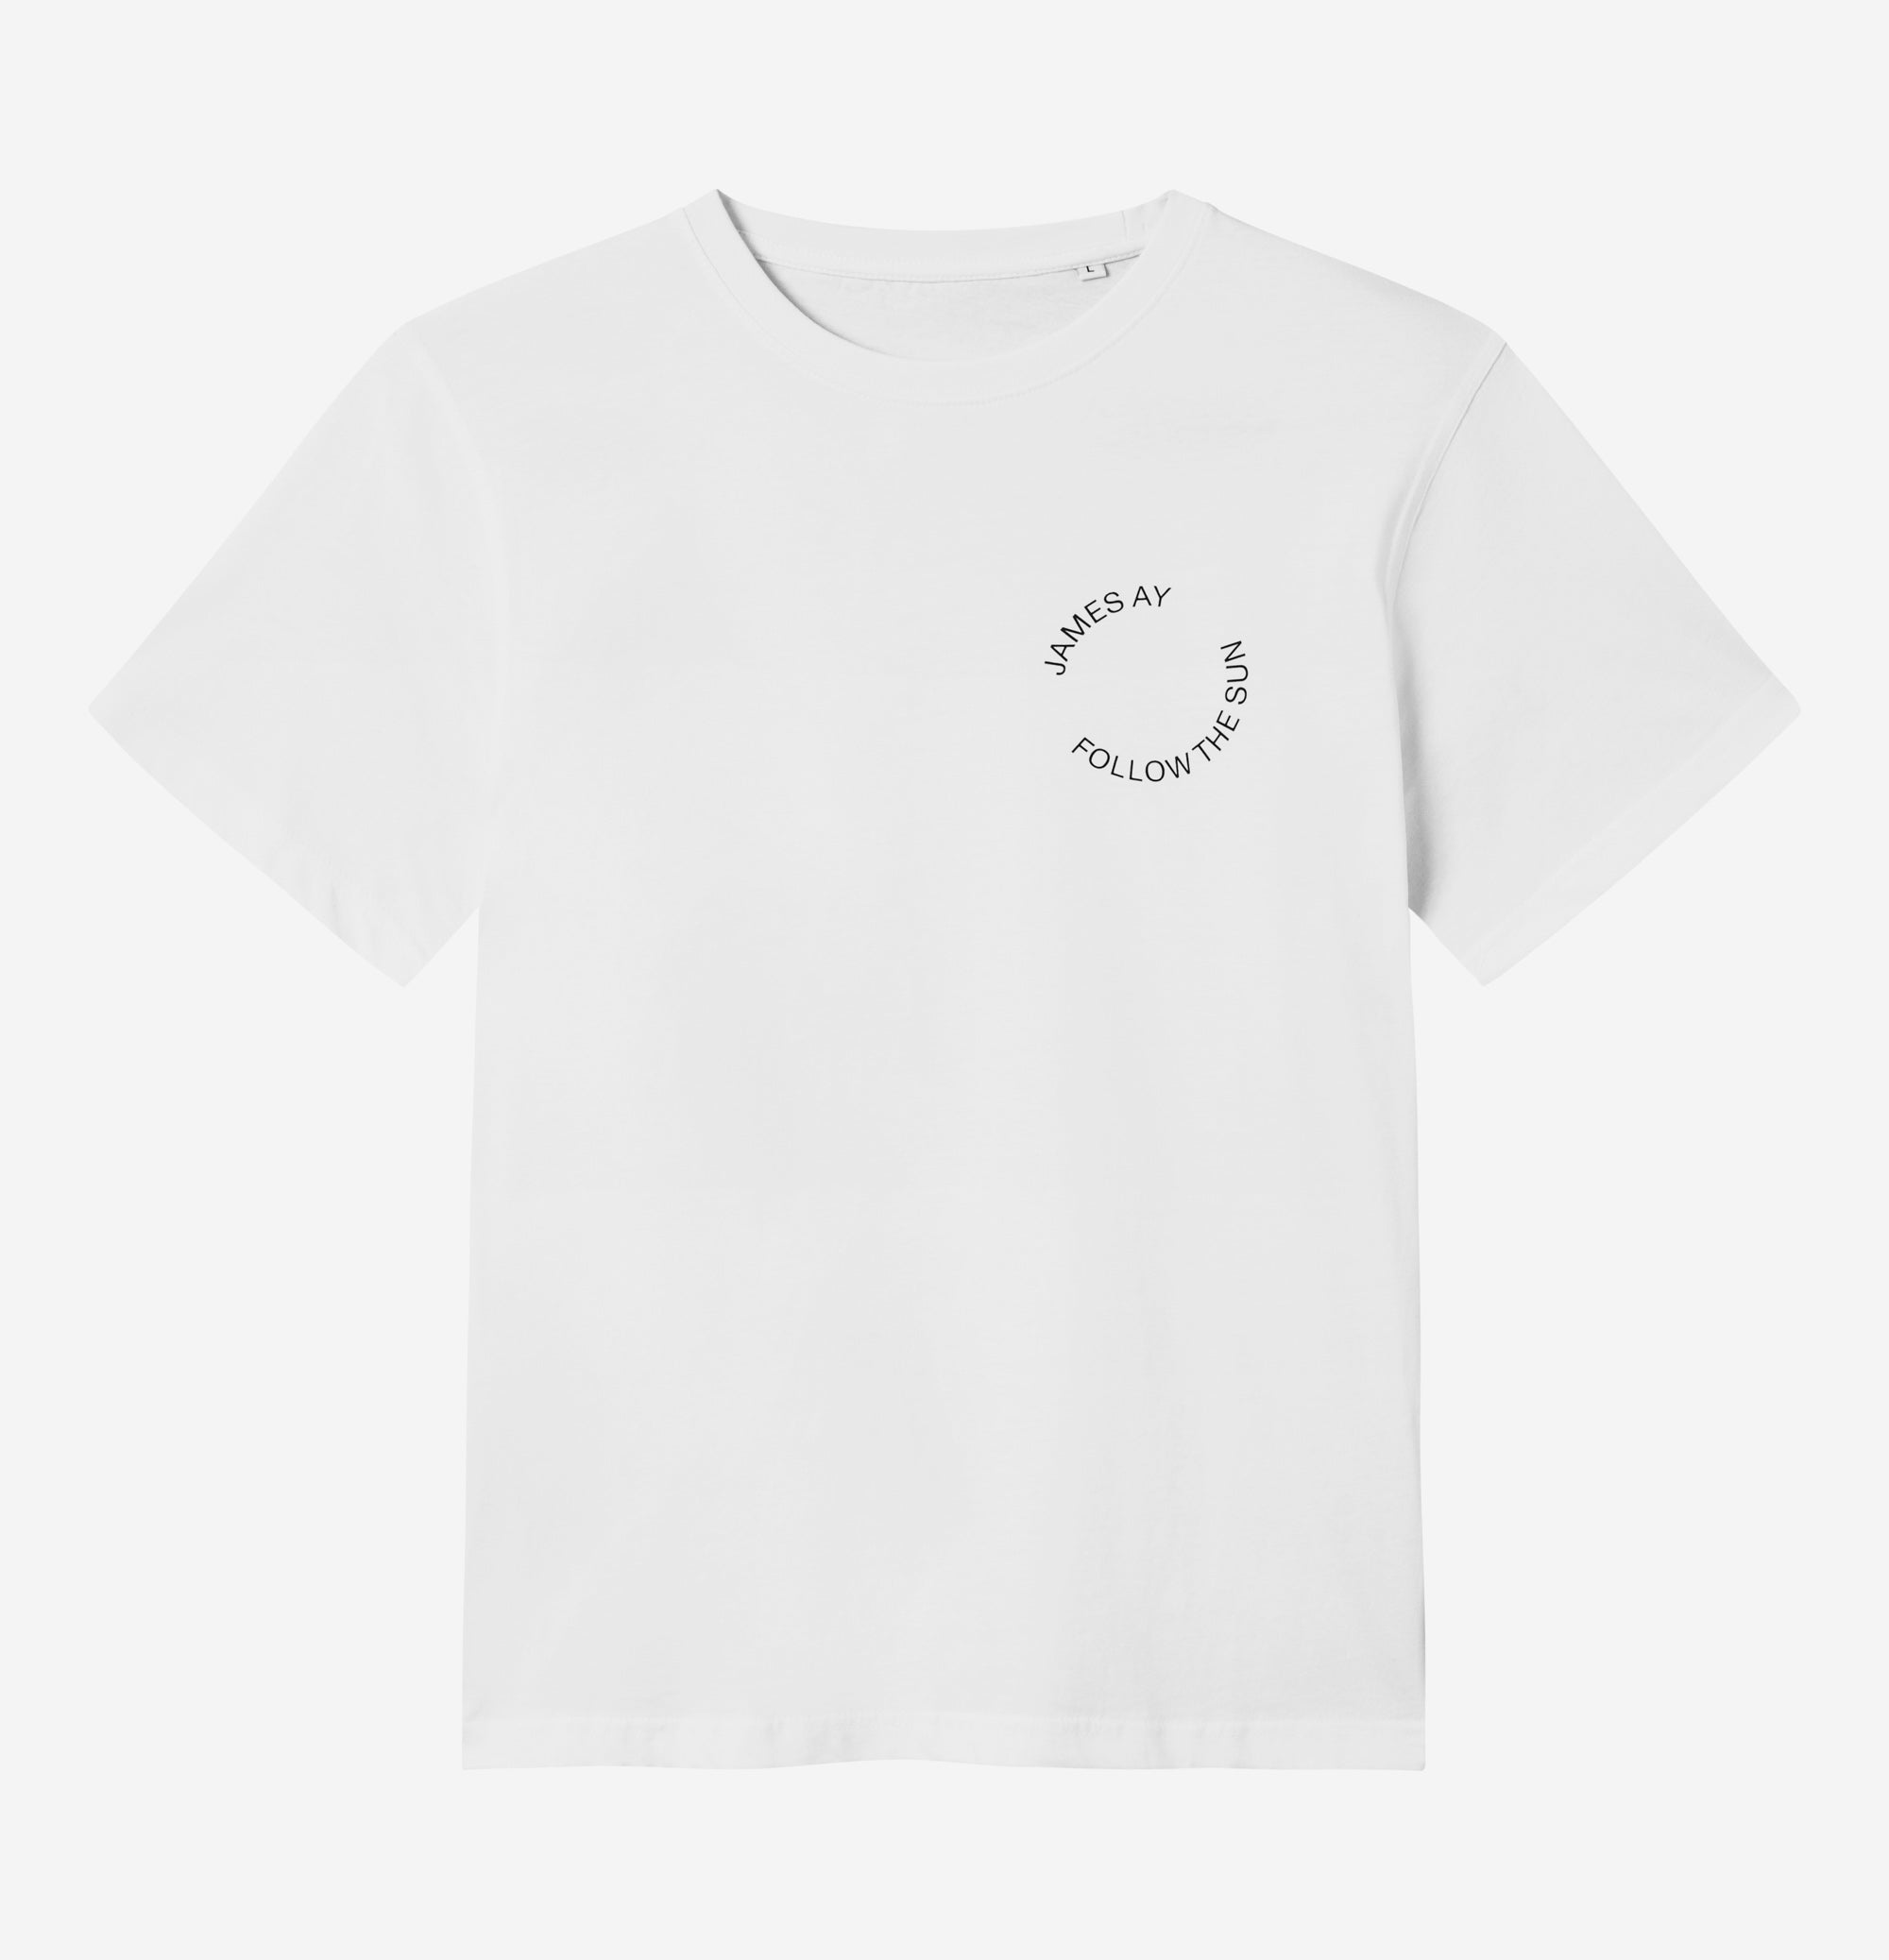 Organic t-shirt - White - James Ay